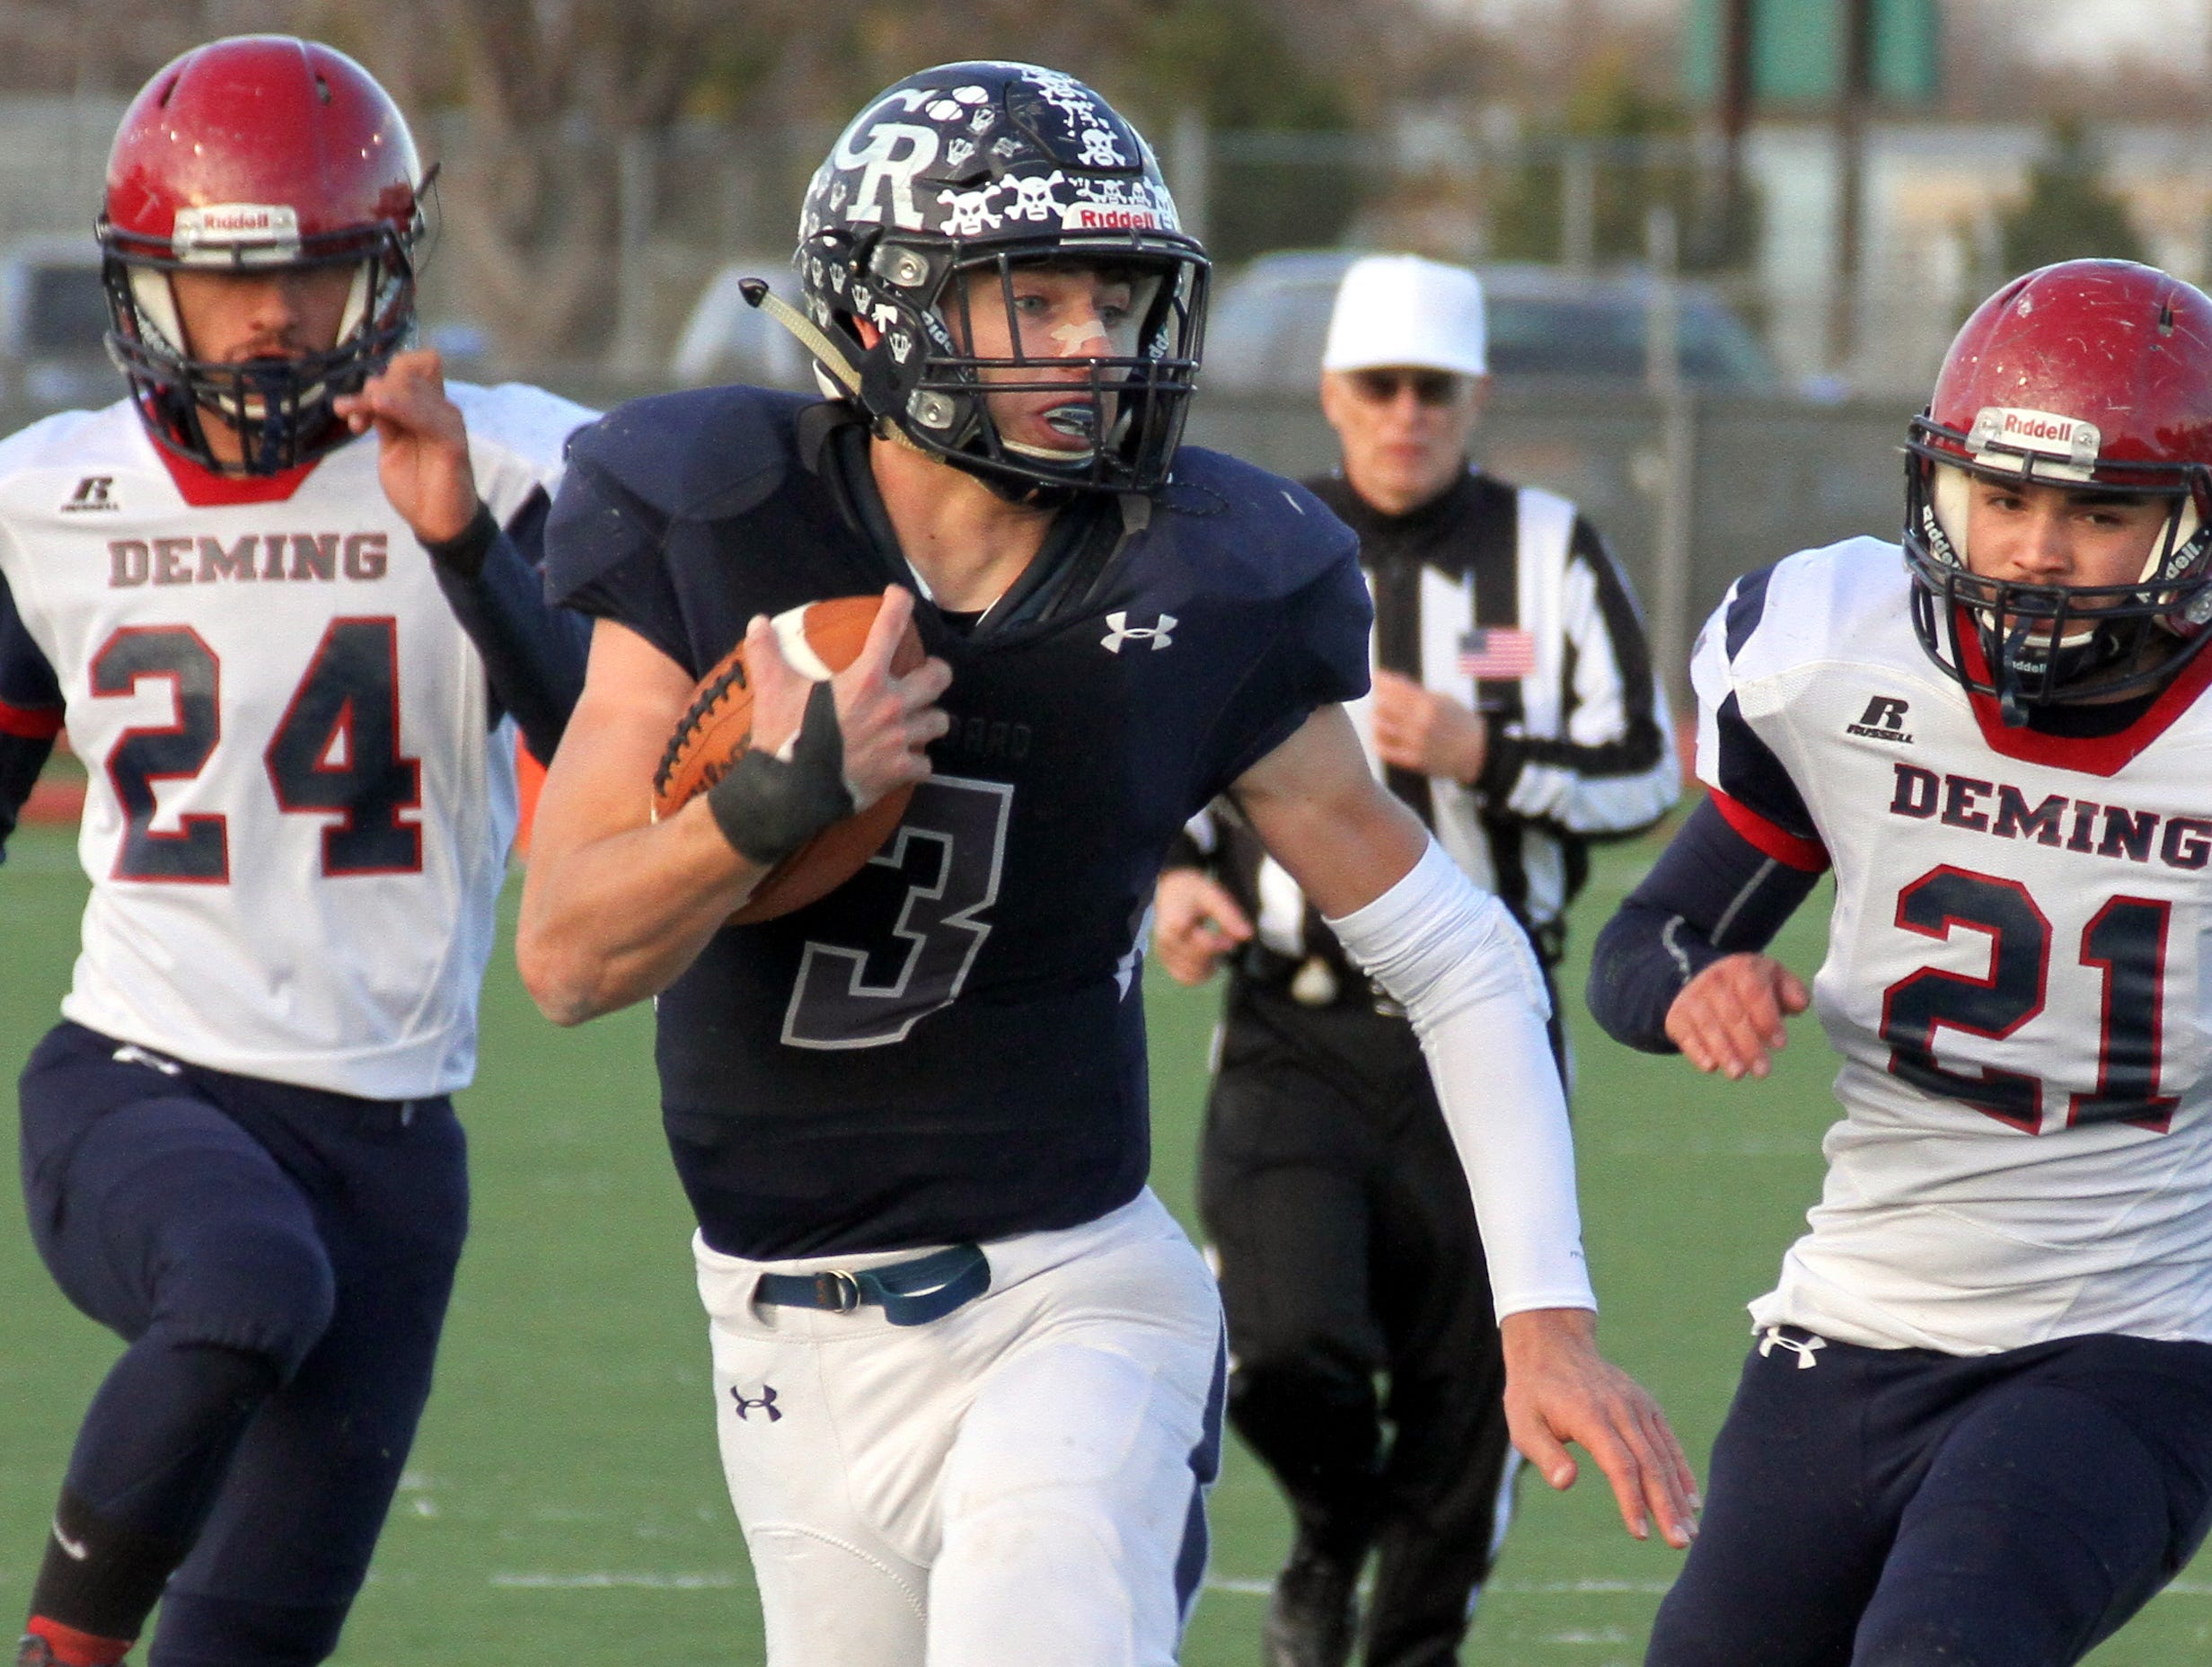 Wildcats James Carroll (24) and Gabriel Reza (21) in pursuit of Rockets quarterback Dalton Bowles.